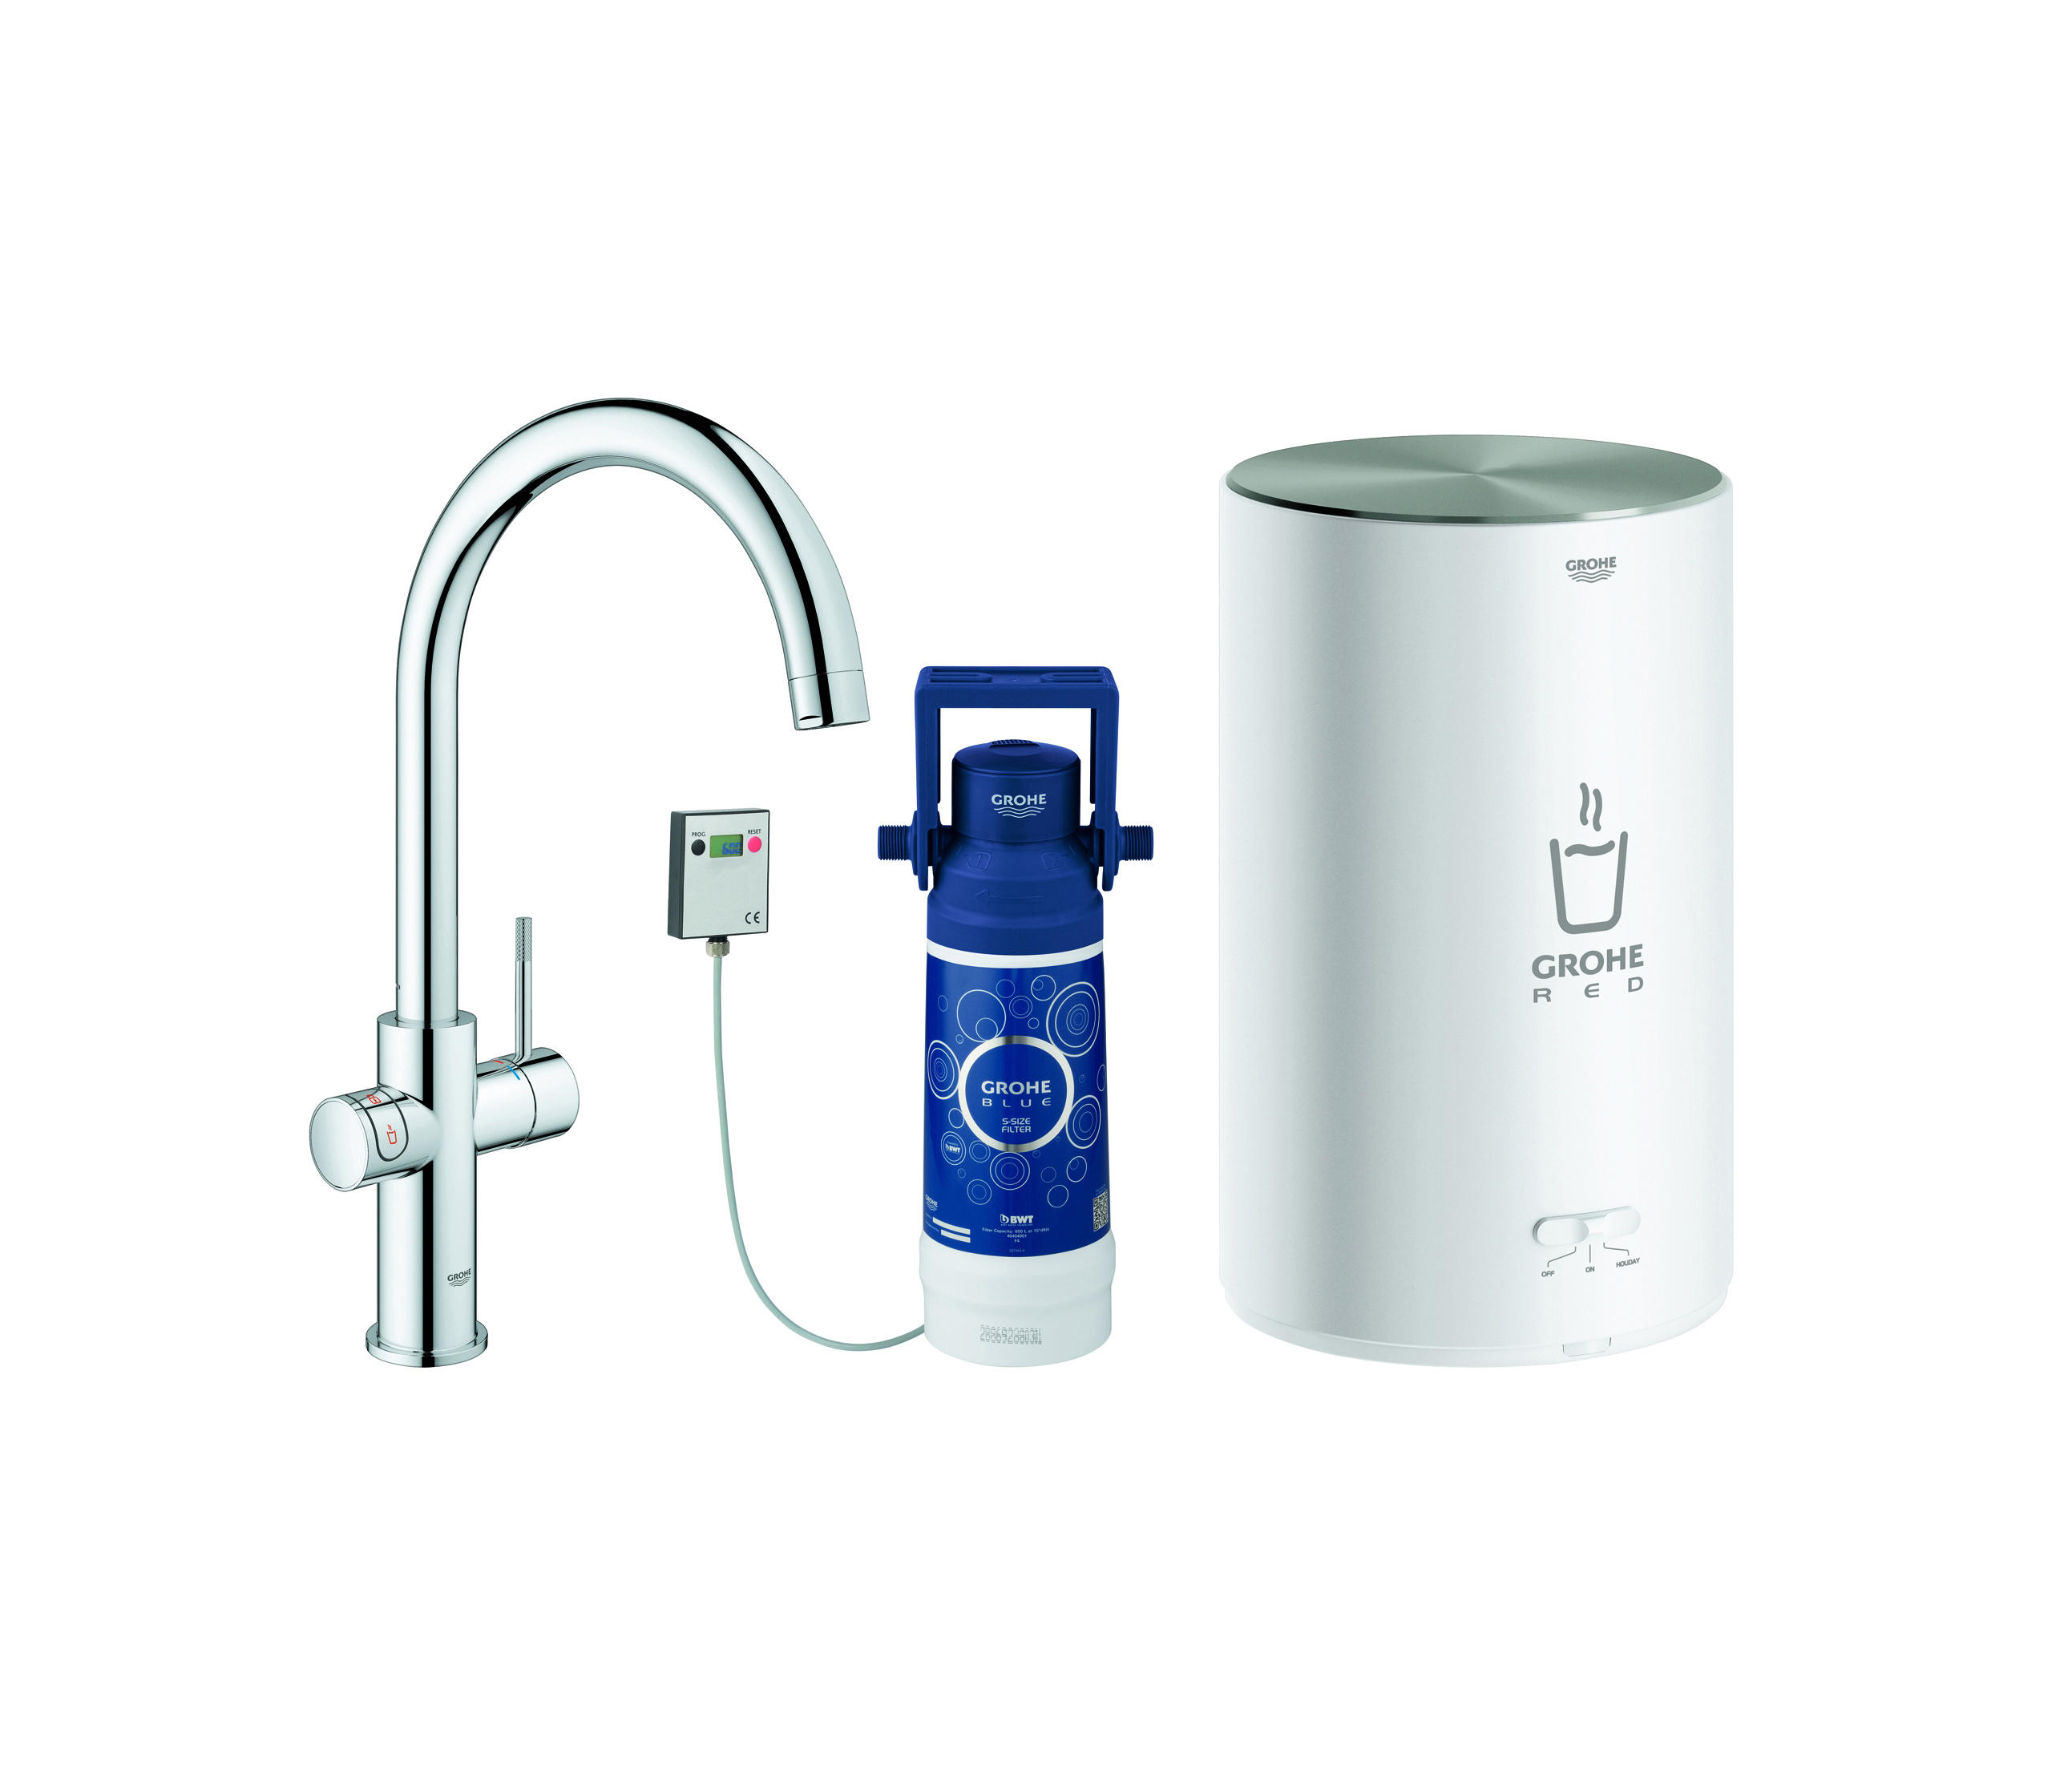 GROHE RED DUO FAUCET AND M SIZE BOILER - Kitchen taps from GROHE ...